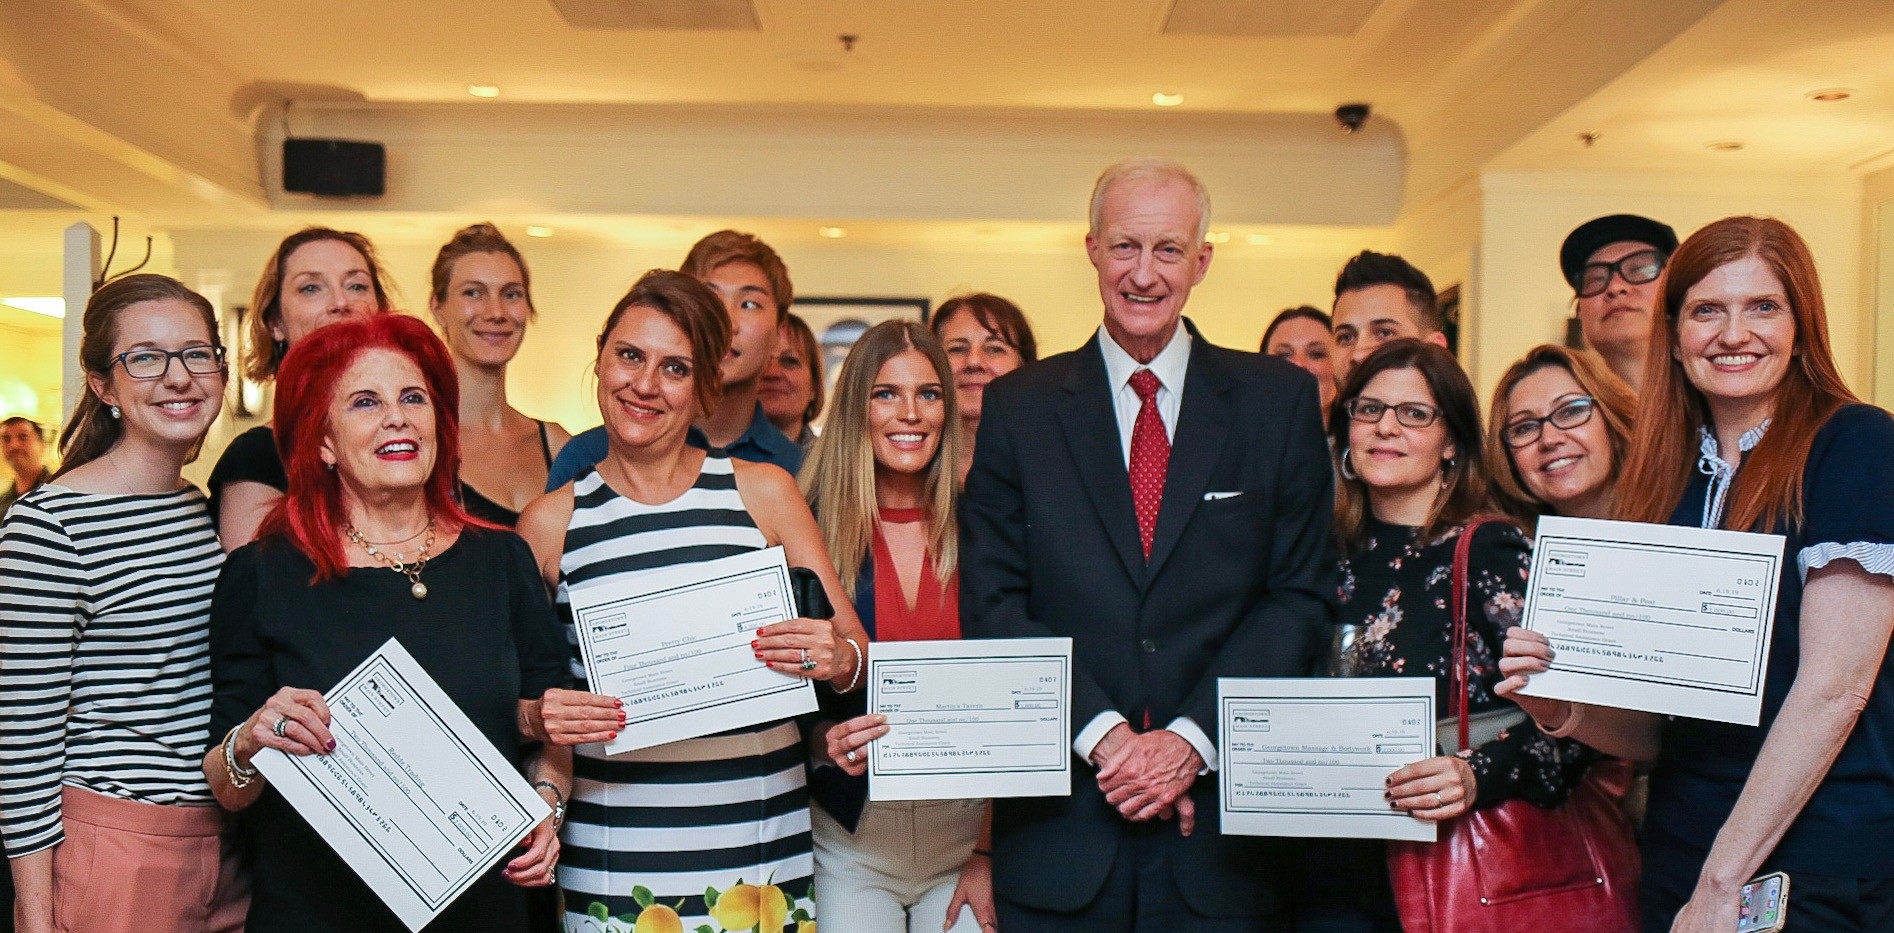 2019 Small Business Grant Ceremony